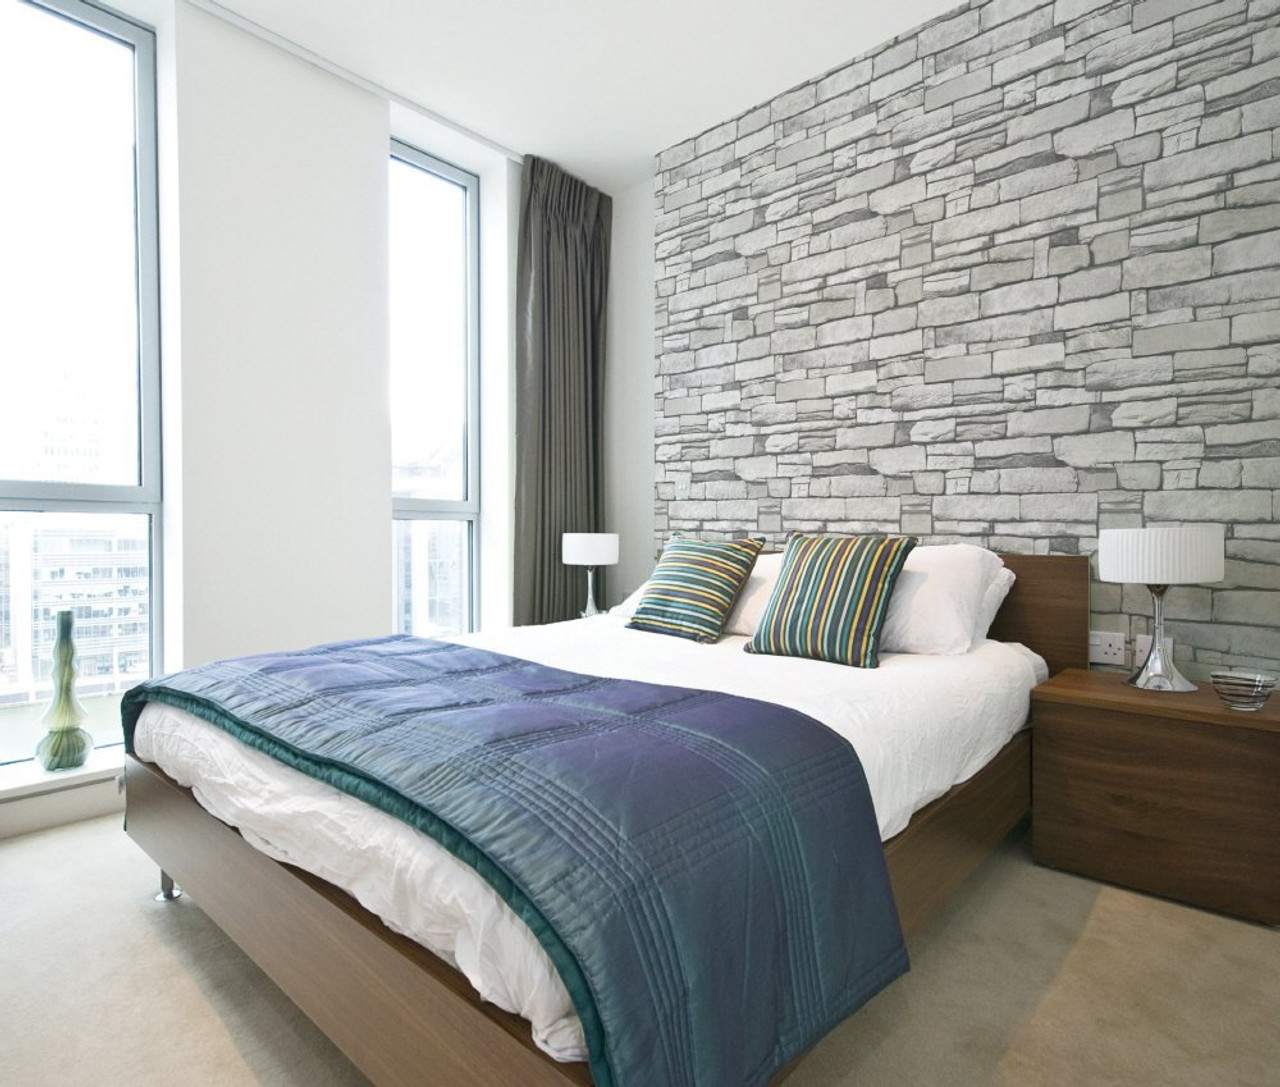 Stacked Brick Pattern Self Adhesive Peel And Stick Mural Contact Wallpaper White Grey 50cm X 3m 19 6 X 118 0 15mm Waterproof Pvc Kitchen Bed